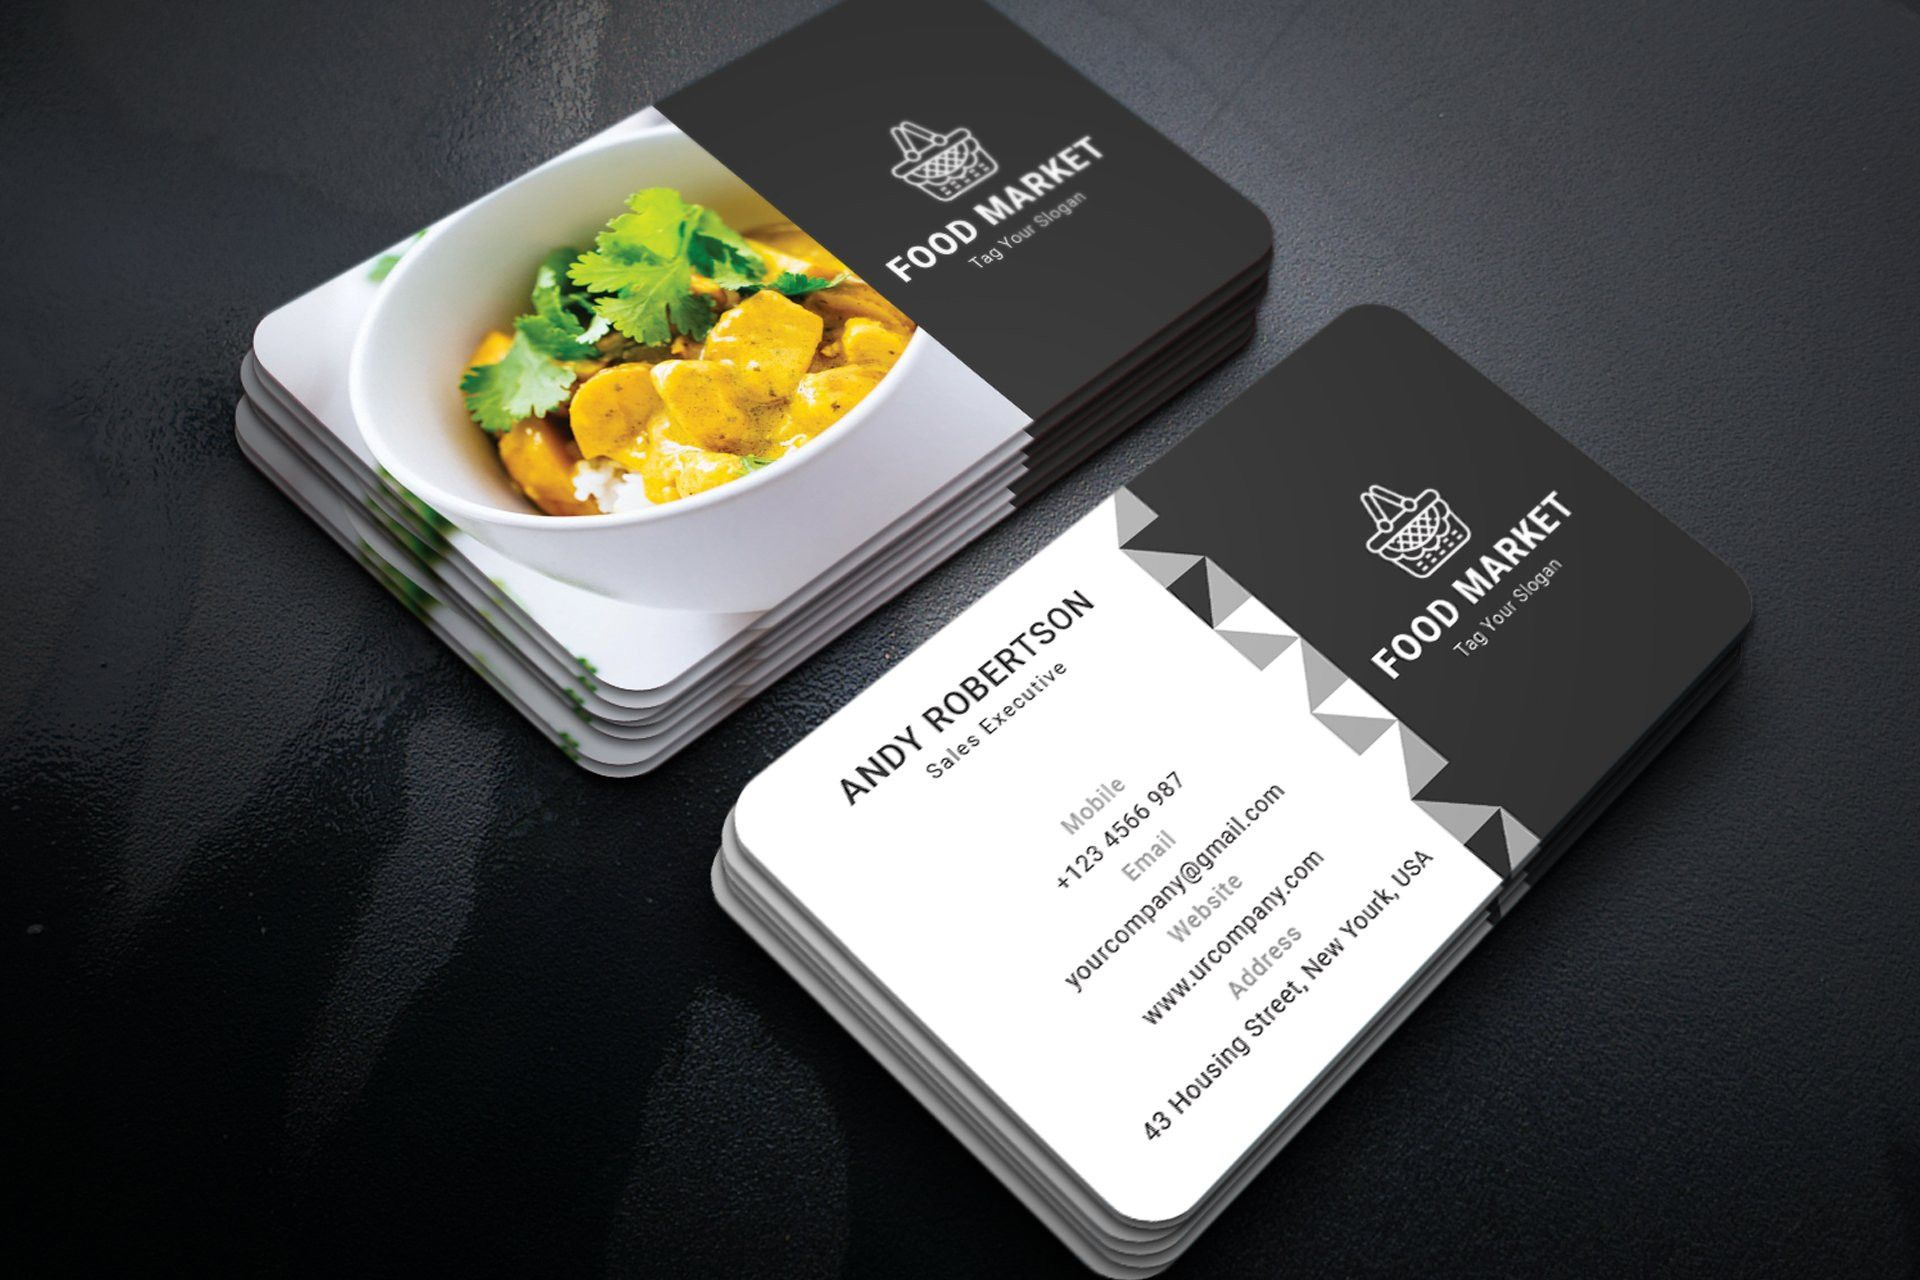 Catering Business Card Template Preview 03 Catering Business Cards Catering Business Food Business Card